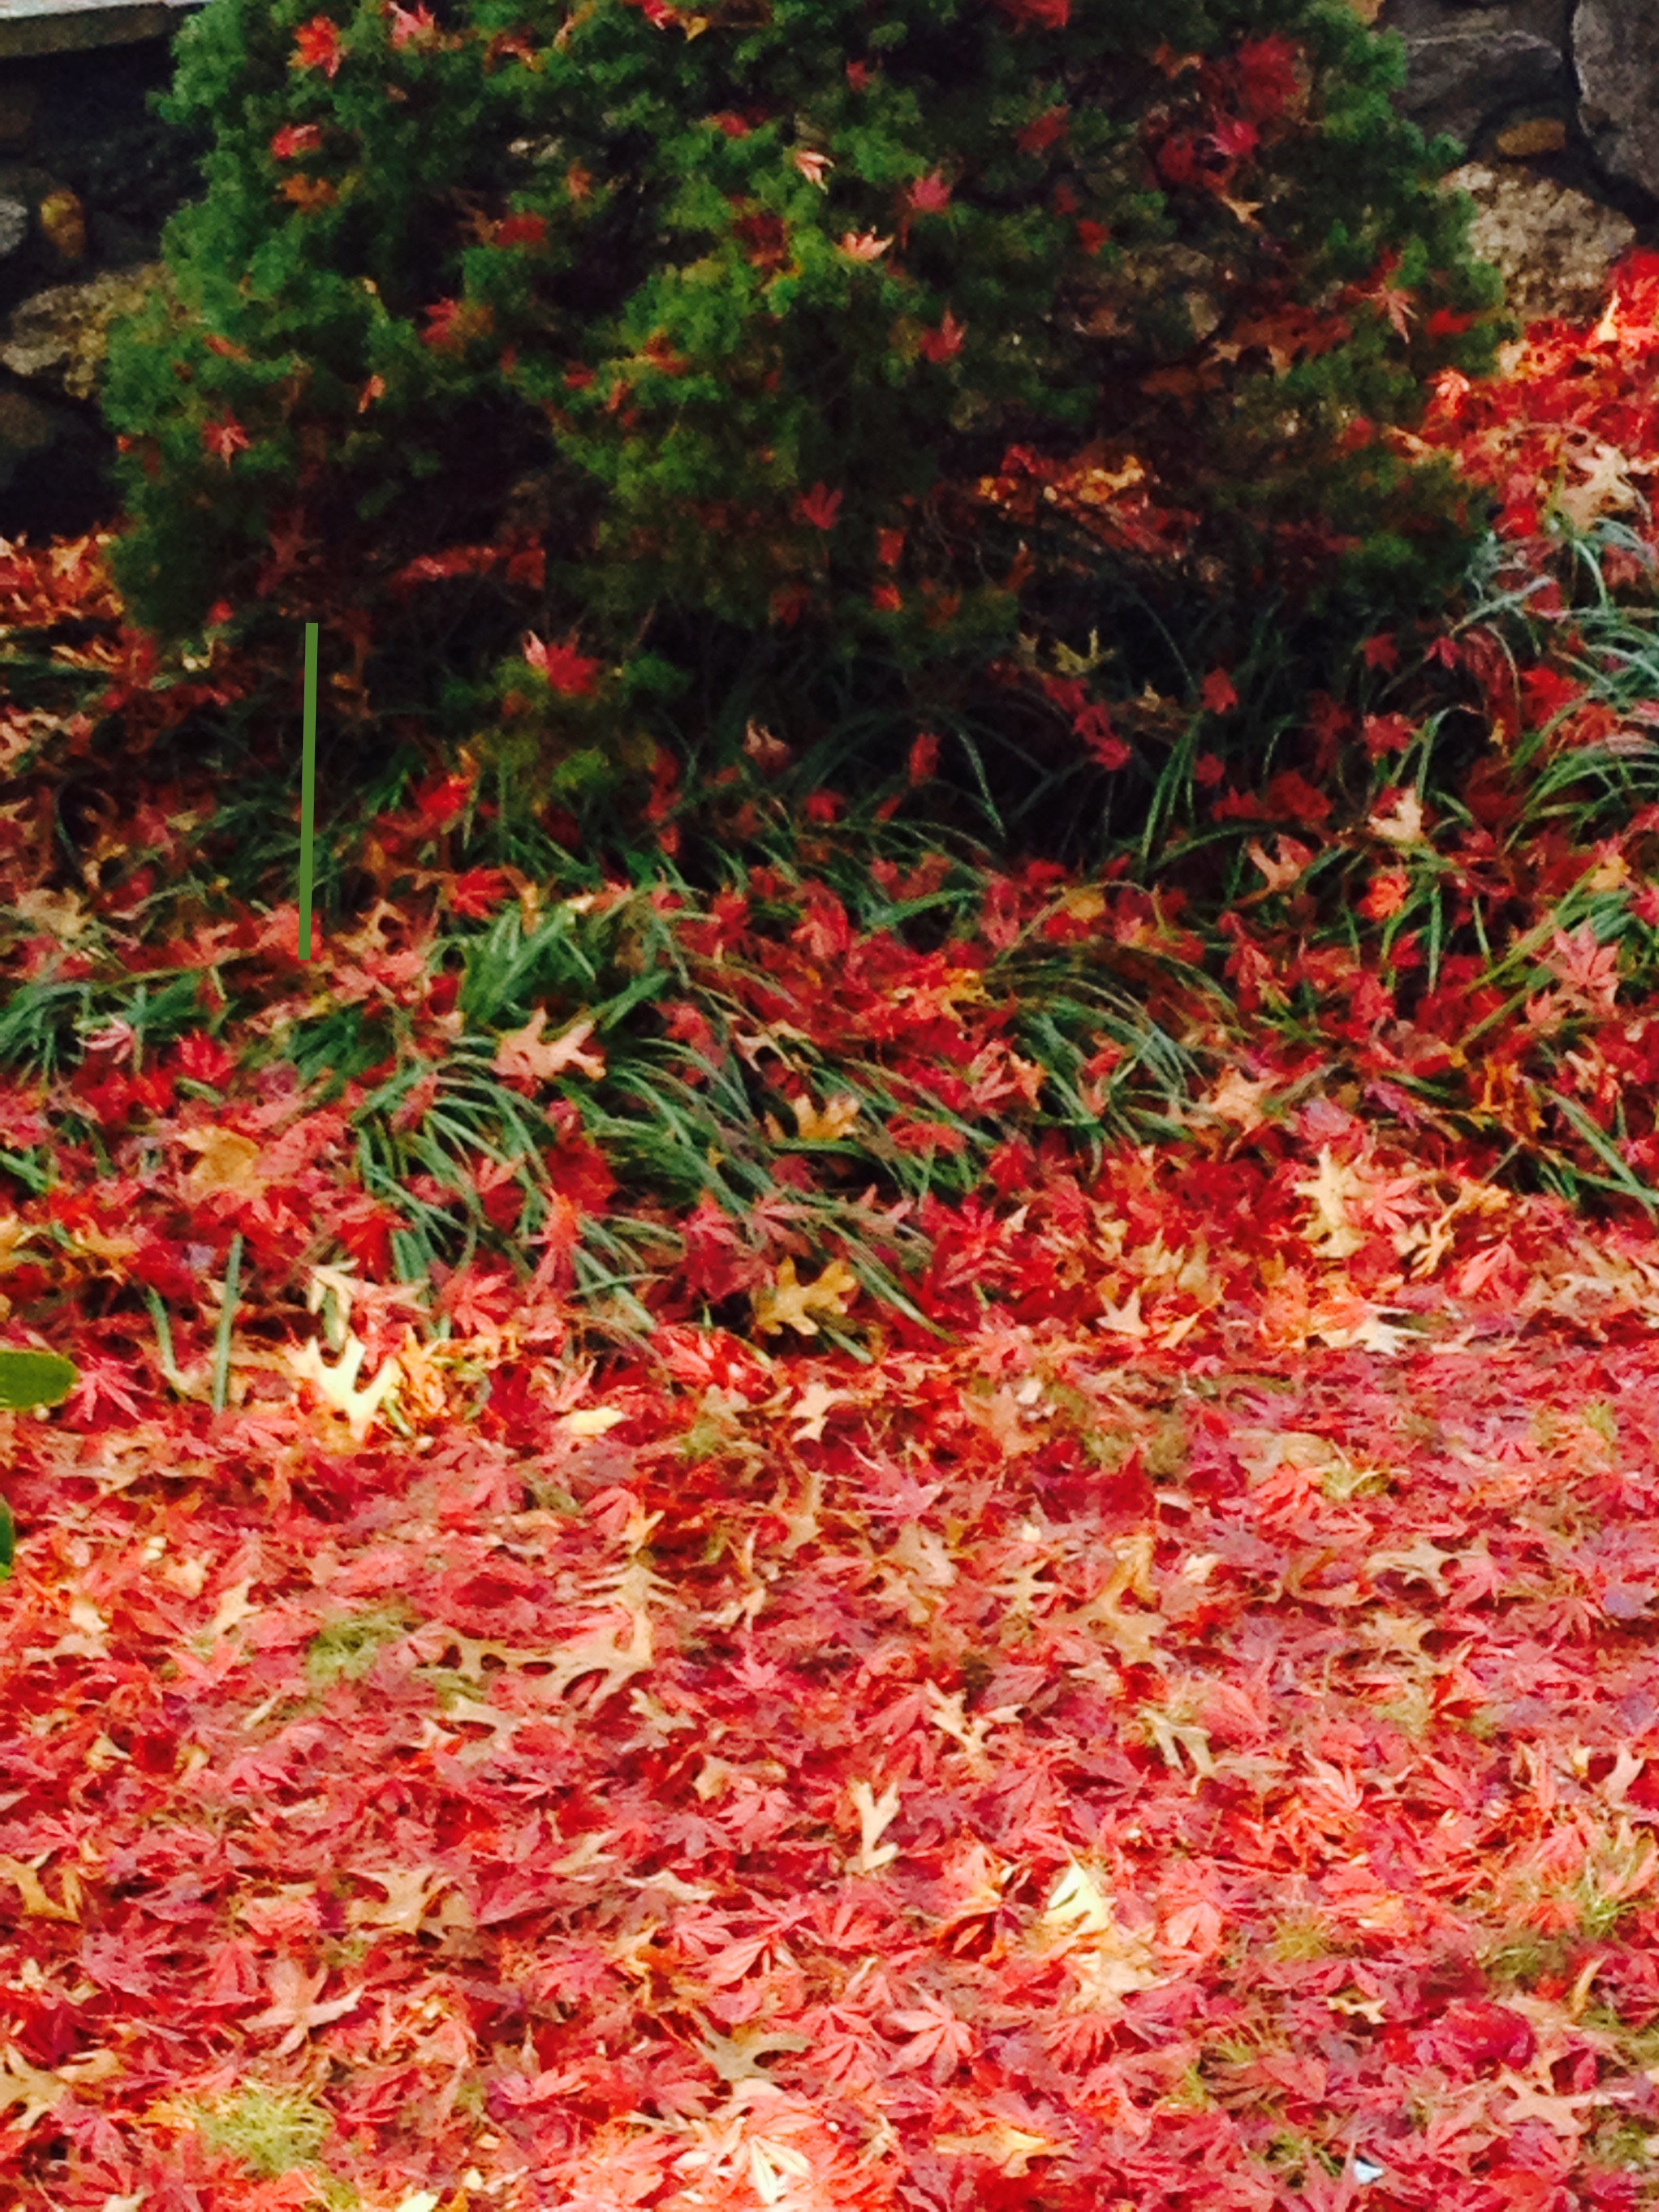 These are days of crimsons, golds, ochres, blues, greens, rusts. It is the opening of Fall when leaves are slowly turning and appearing along the banks and in the woodlands of the Hudson Valley. It is the warmth of the sun on your body, while picking apples and gourds on a lusciously warm Autumnal day.  This year on October 28th and November 11th, we are inviting you to join a one or two day experience integrating photography and meditation. Perhaps you would like to see what you think you see, or perhaps you would like to see anew; with fresh eyes, peering through your camera's lense with new interest and views. We will be learning, hiking, photographing, meditating and discussing our experiences.............oh and let's not forget the eating.........lunch is provided for an additional small fee or bring your own...................Each day's cost is $75.00 US, add another day for additional enrichment and communal practice. You are welcome to add any amount over 75.00; to offset the cost of scholarship for other auspicious participants as well.  Register with Karen Noreika at 914-941-4455 Ext. 106  The opportunity out there, lies within...............See you there!...................Joy